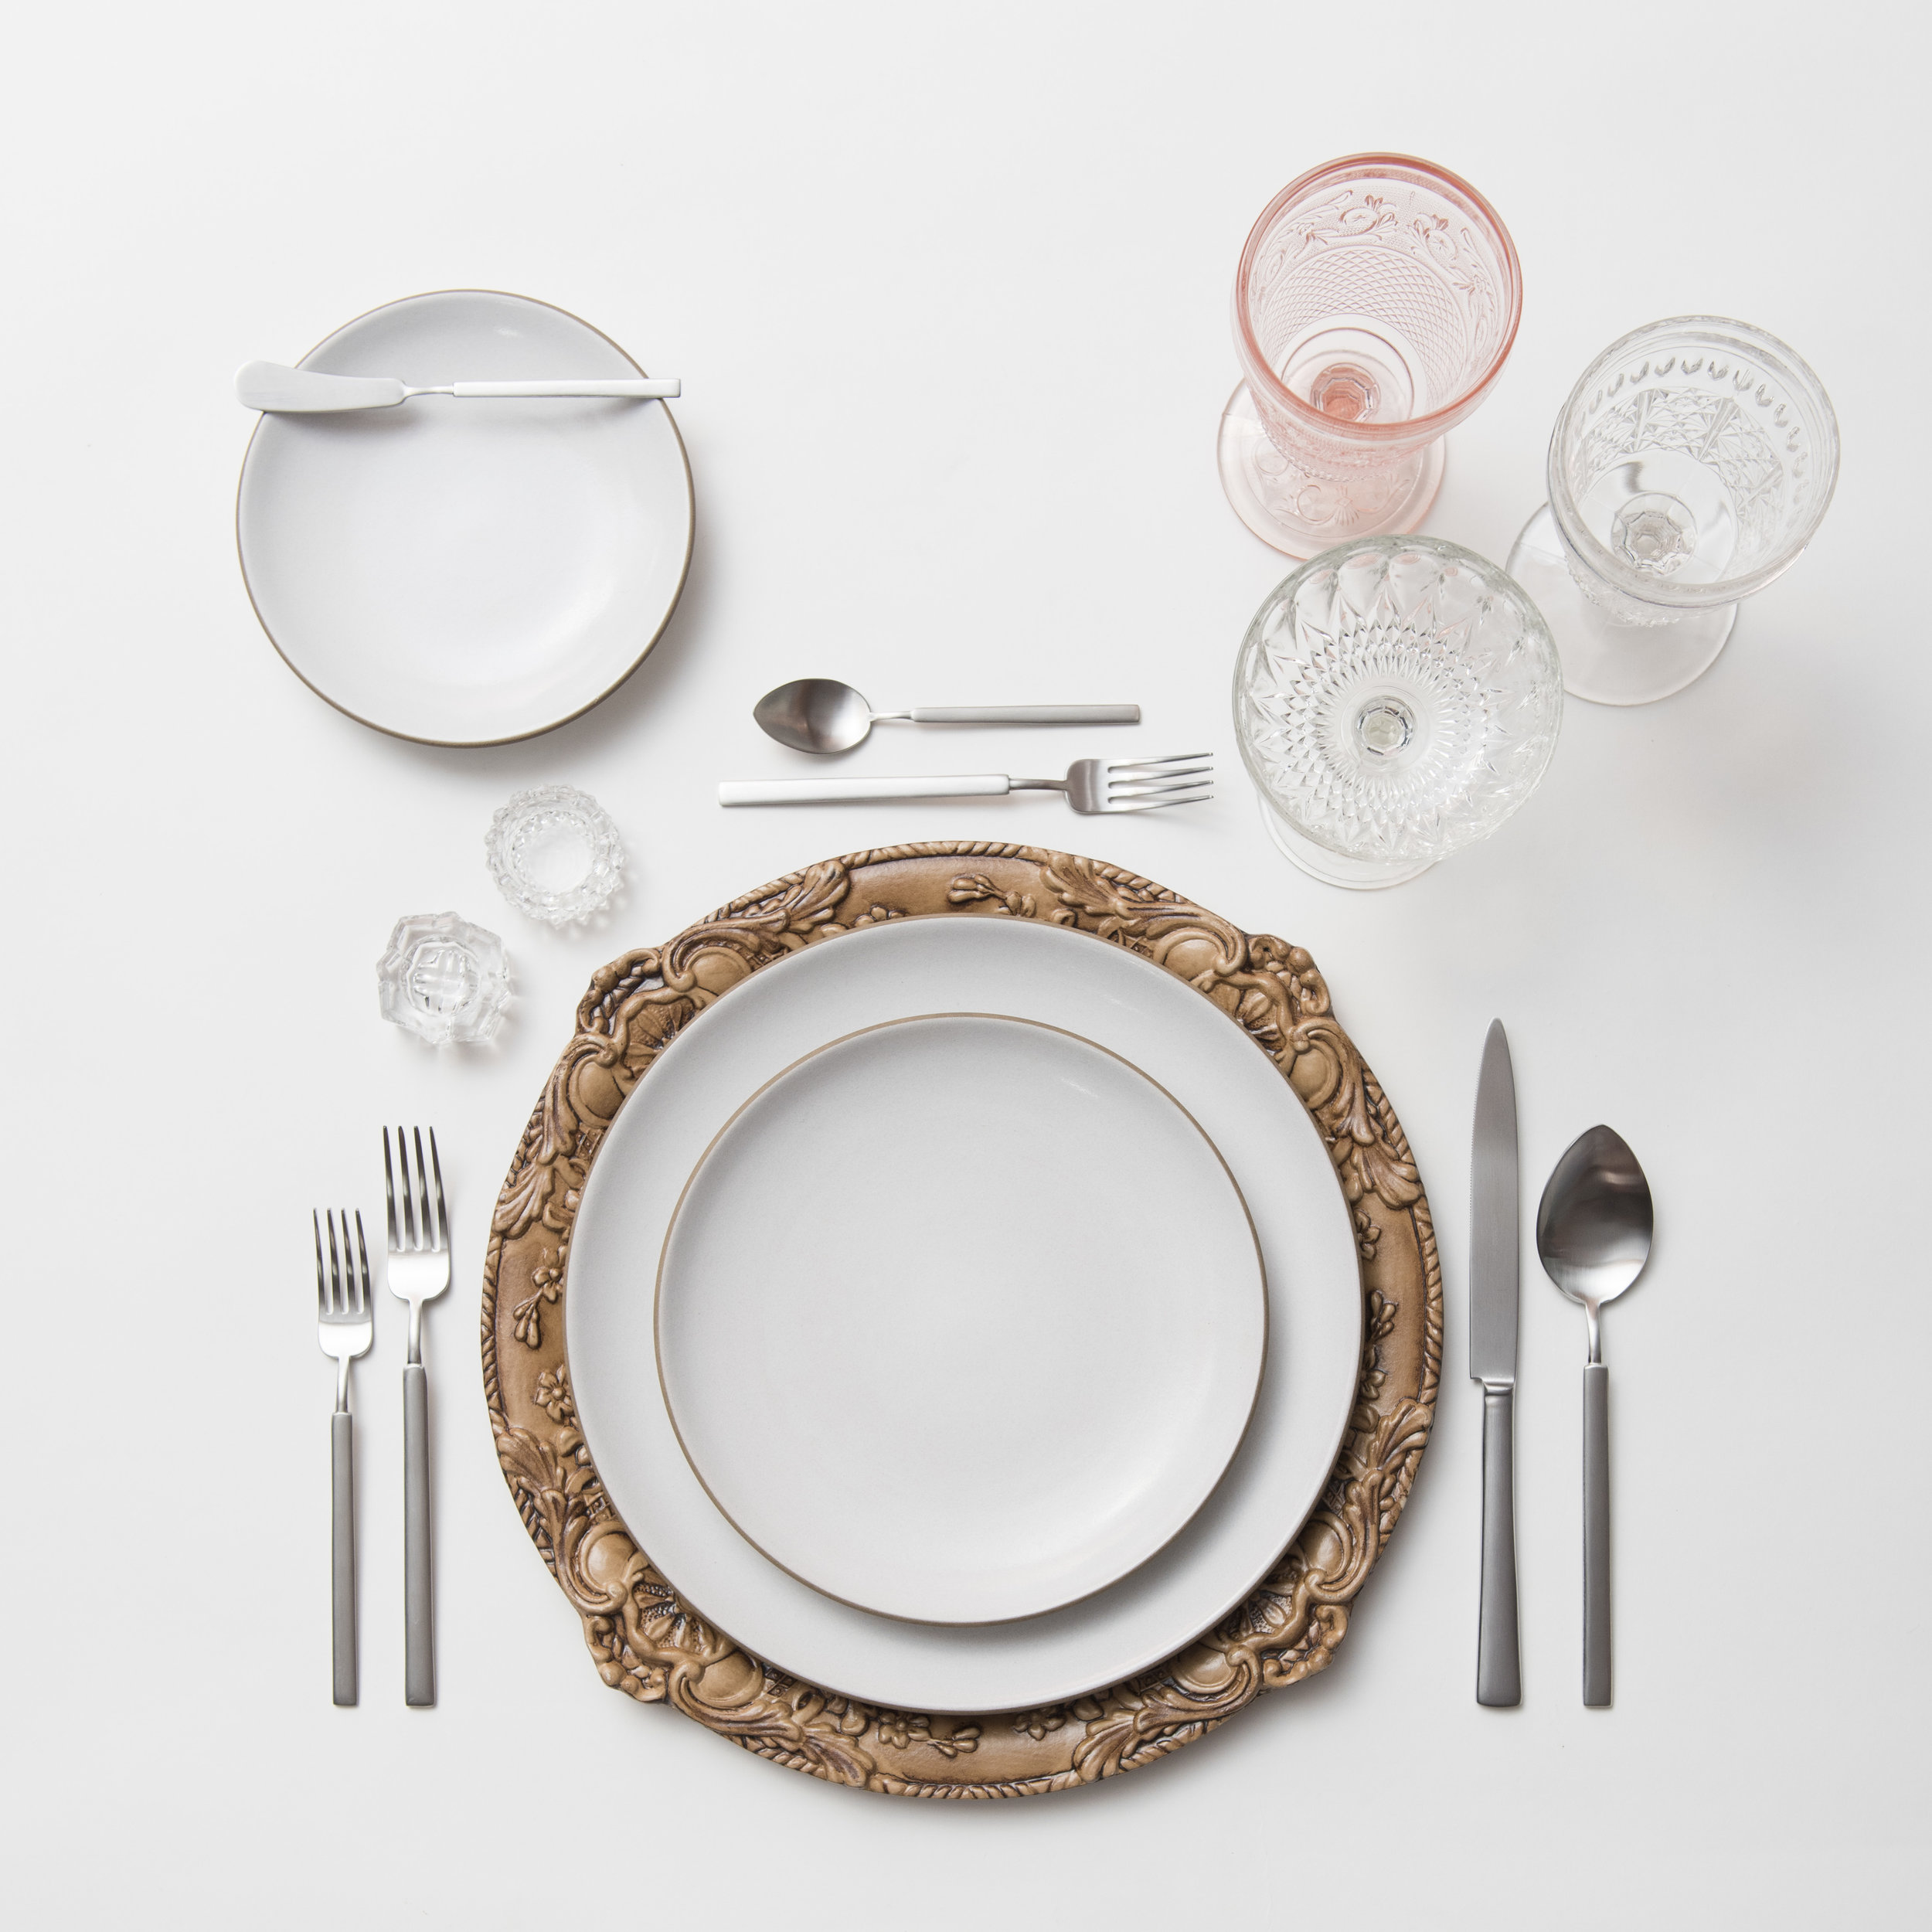 RENT: Verona Chargers in Walnut + Heath Ceramics in Opaque White + Axel Flatware in Matte Silver + Pink Vintage Goblets + Early American Pressed Glass Goblets + Vintage Champagne Coupes + Antique Crystal Salt Cellars  SHOP:Verona Chargers in Walnut